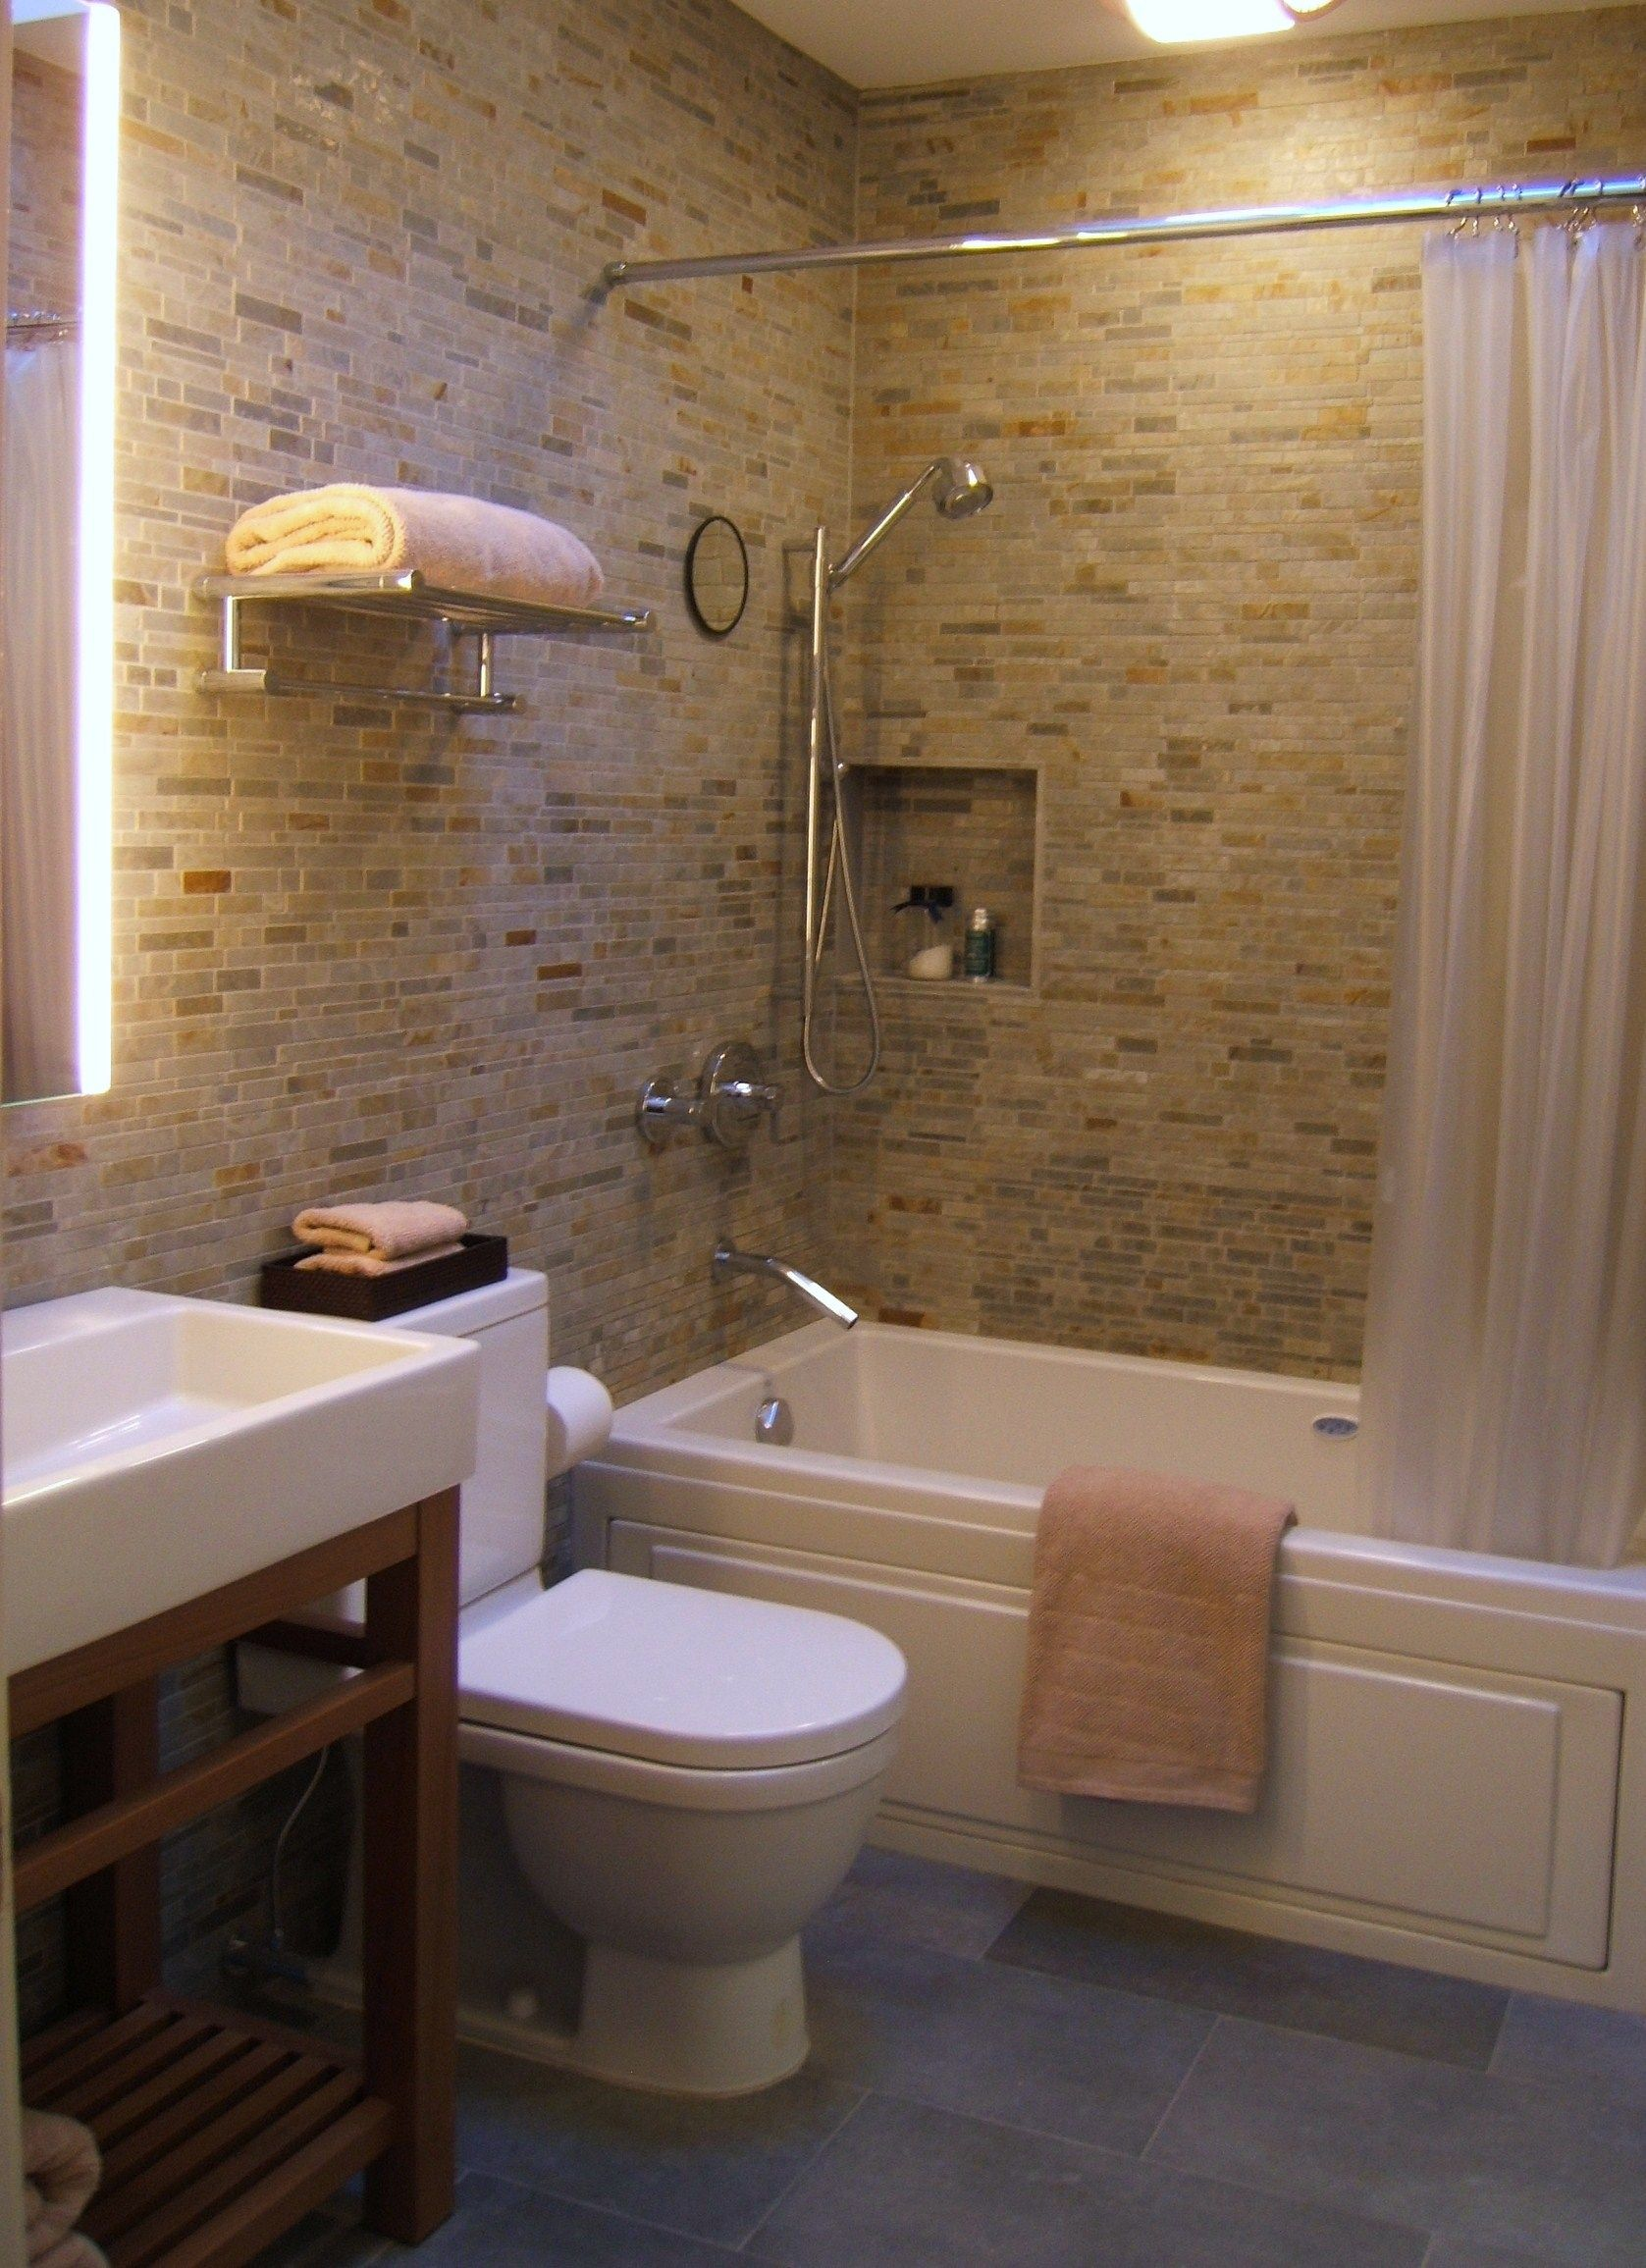 Small bathroom designs south africa small bath for Pictures of renovated small bathrooms